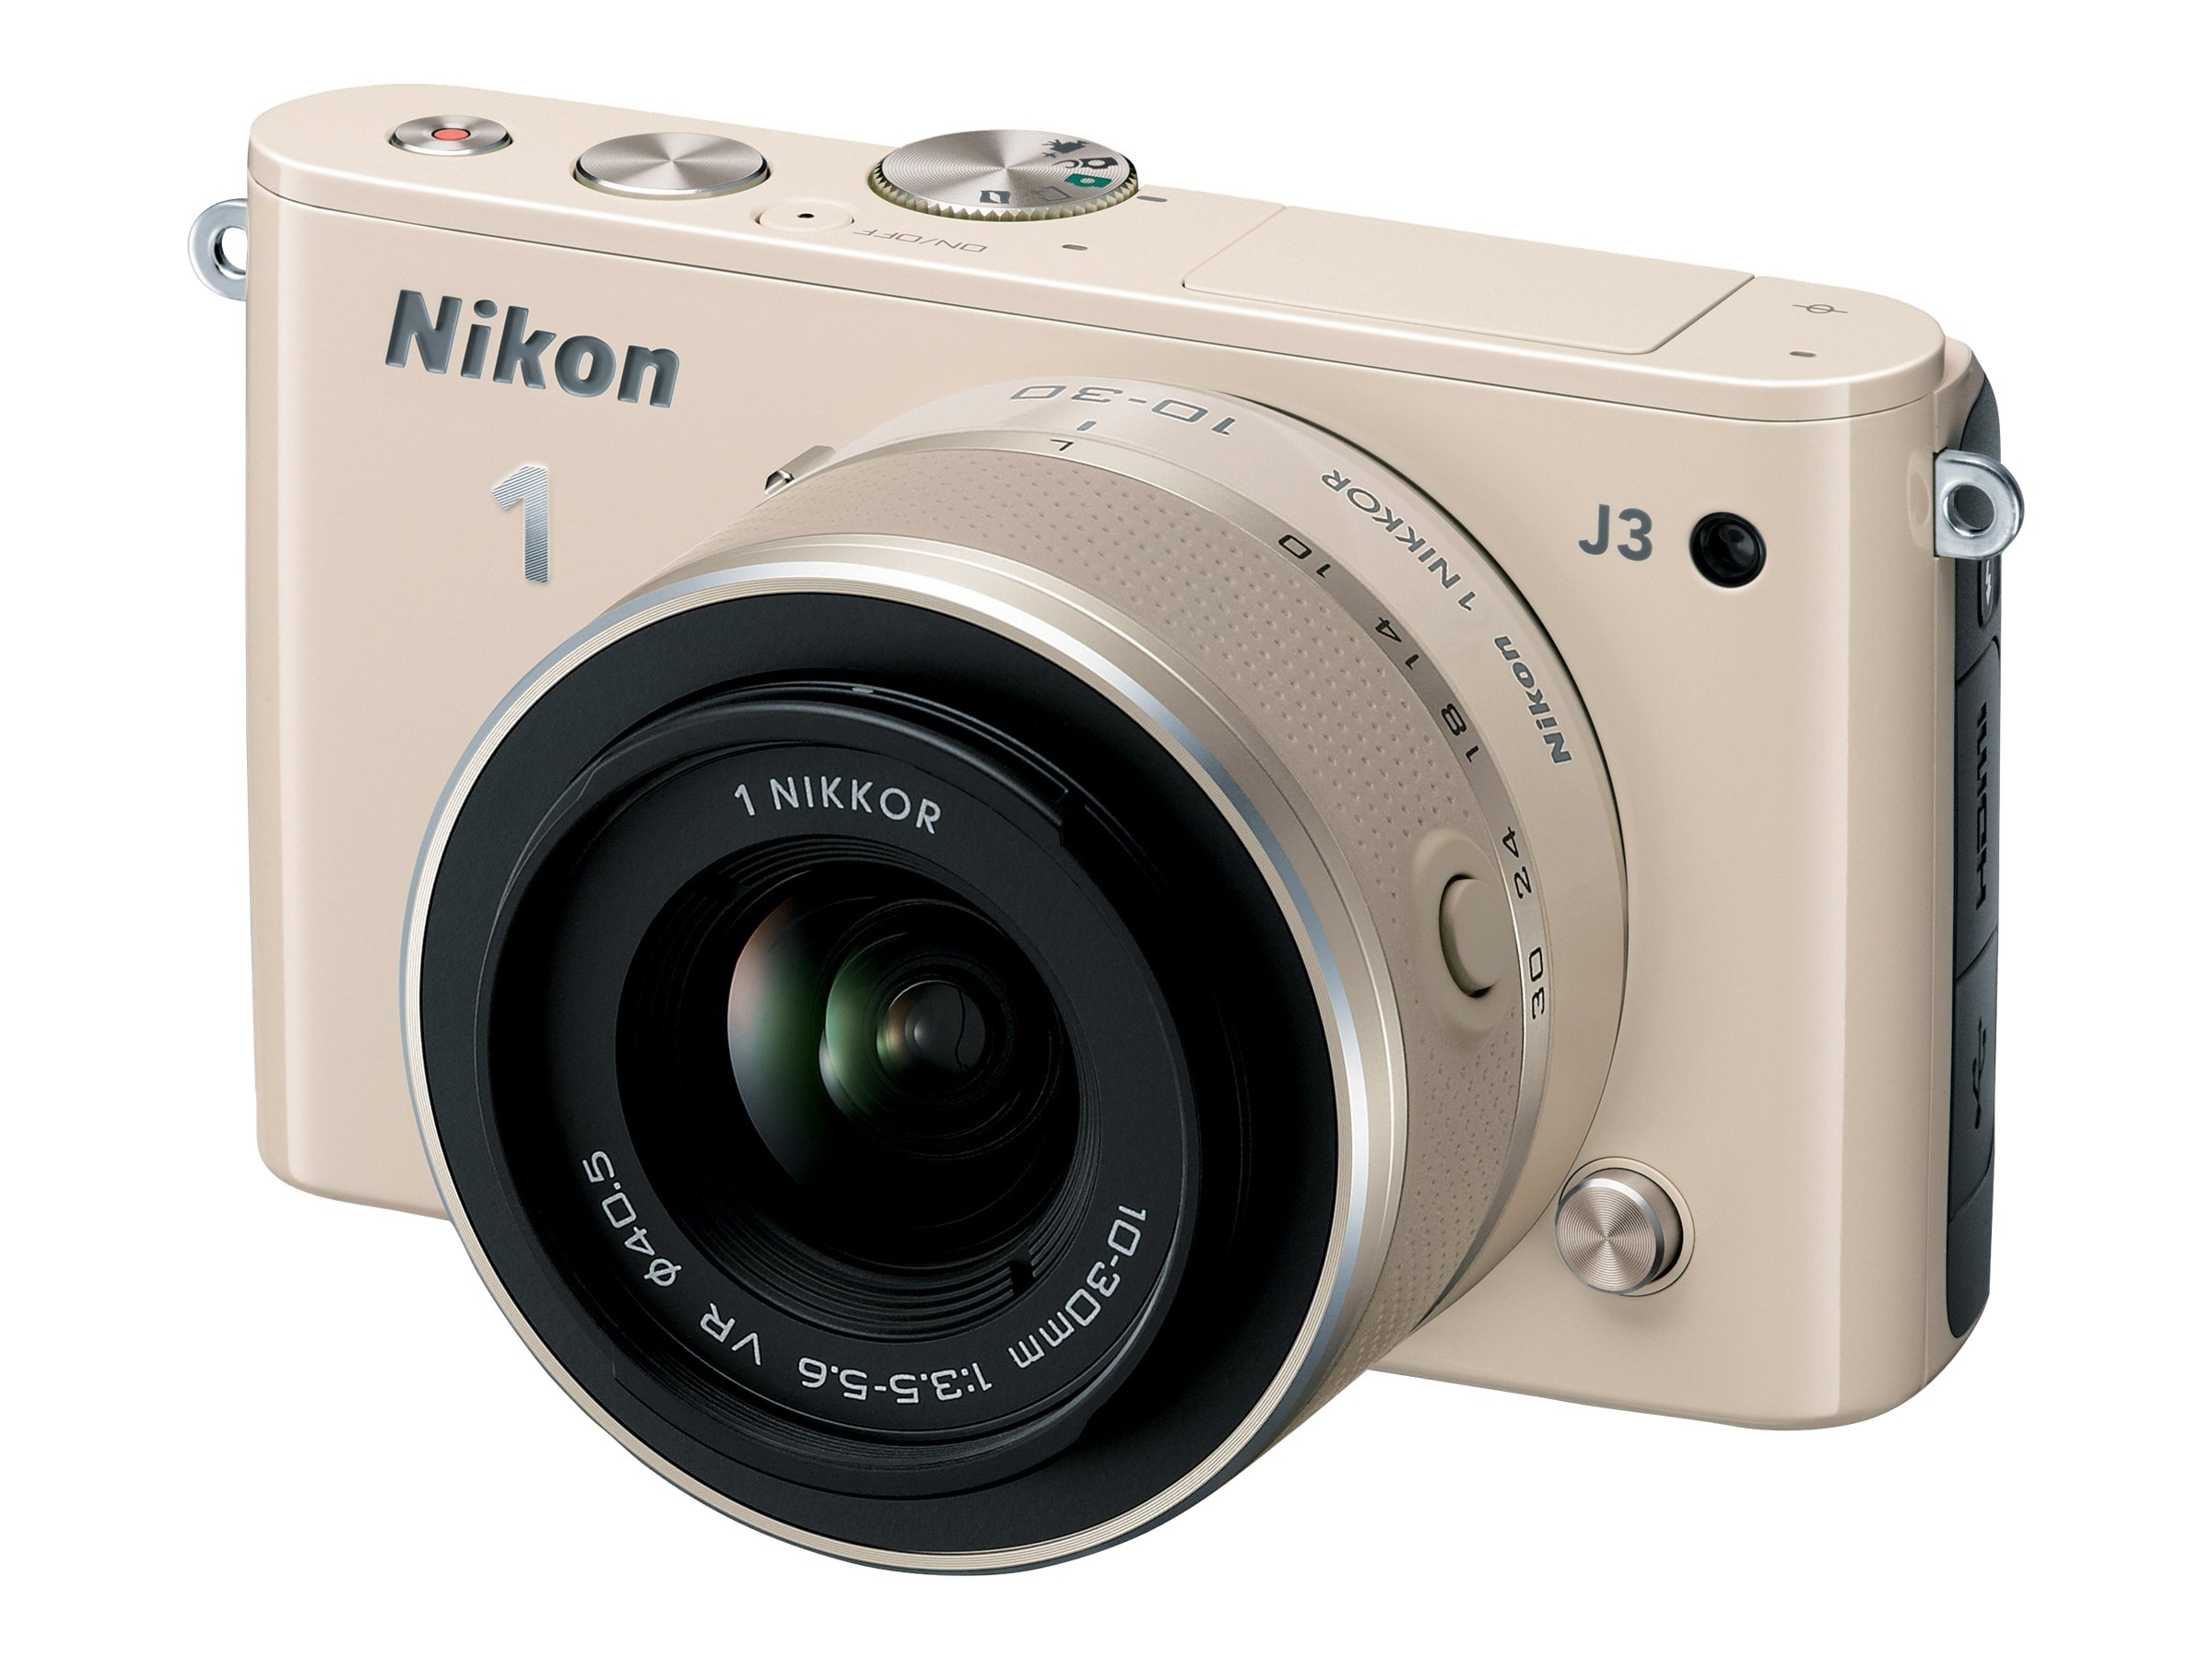 Nikon J3 Interchangable Lens Digital Camera, 14.2MP, Beige with 10-100mm Lens, 27661, 15256535, Cameras - Digital - SLR